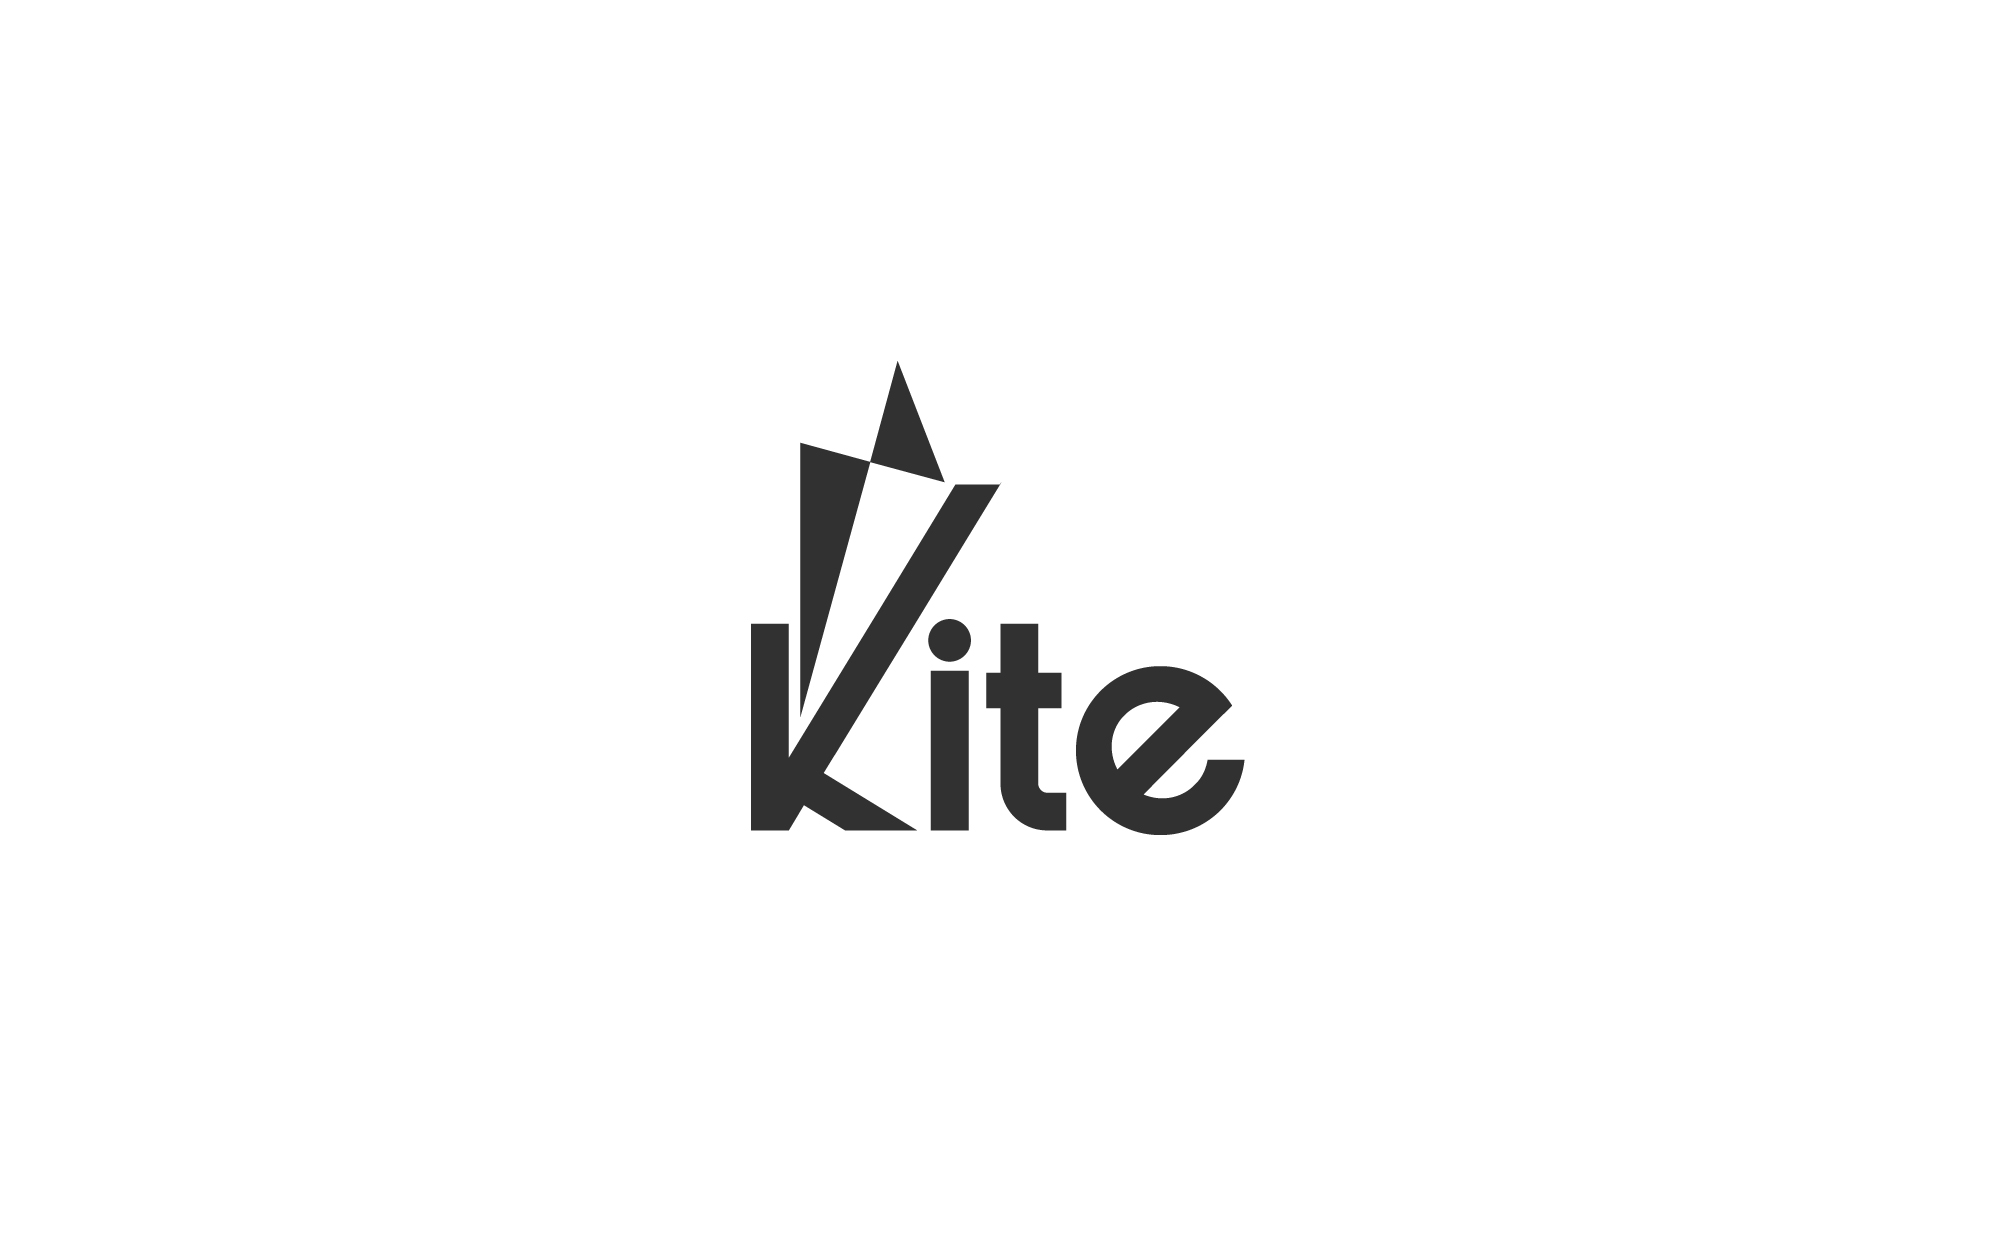 kite_logo_design_branding_matthew_pomorski_kent_graphic_design